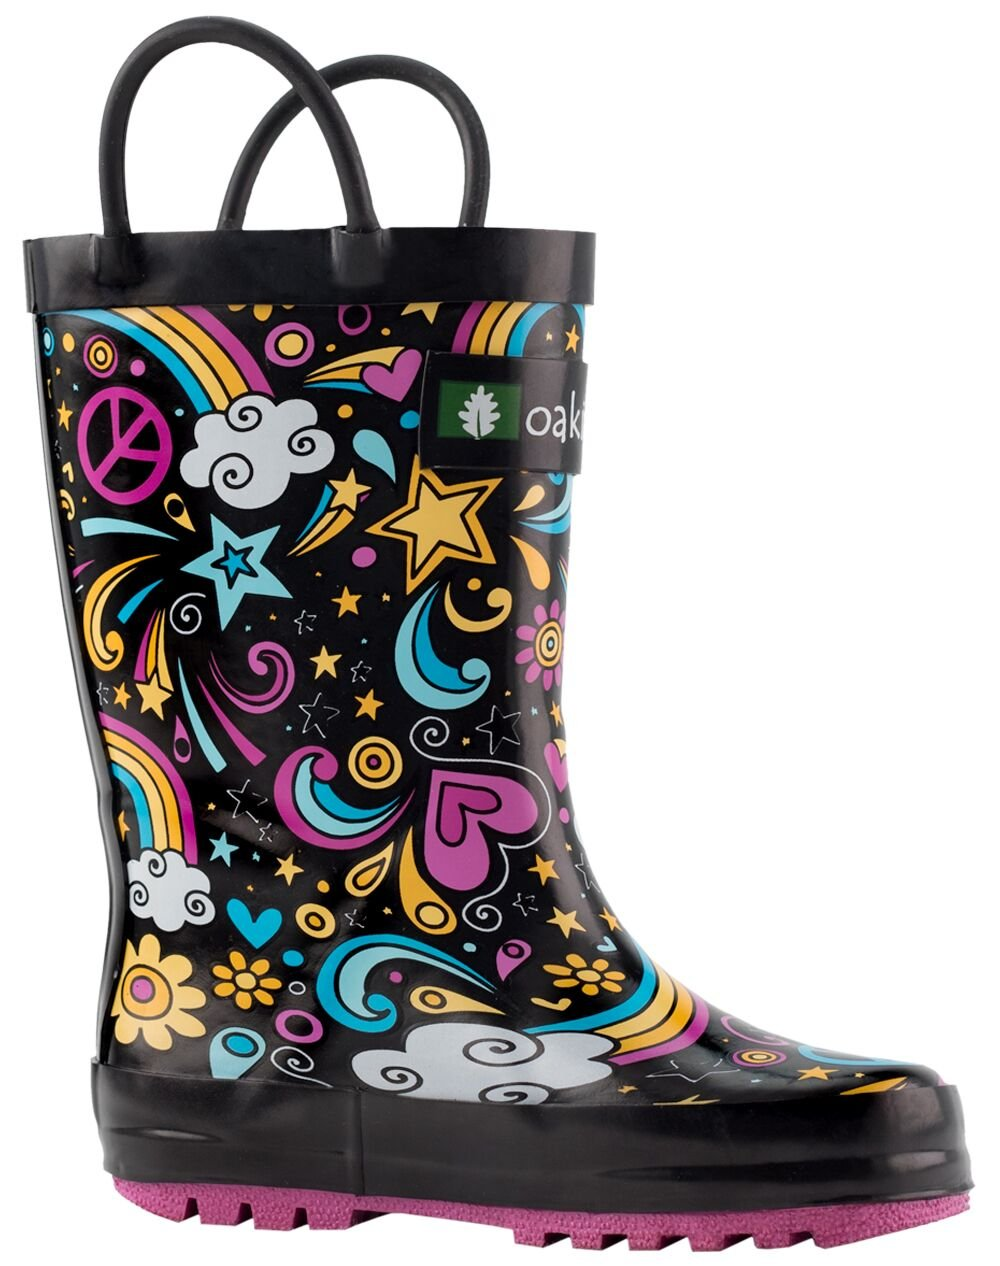 Oakiwear Kids Rubber Rain Boots with Easy-On Handles, Peace, Love & Rainbows, 11T US Toddler, Peace